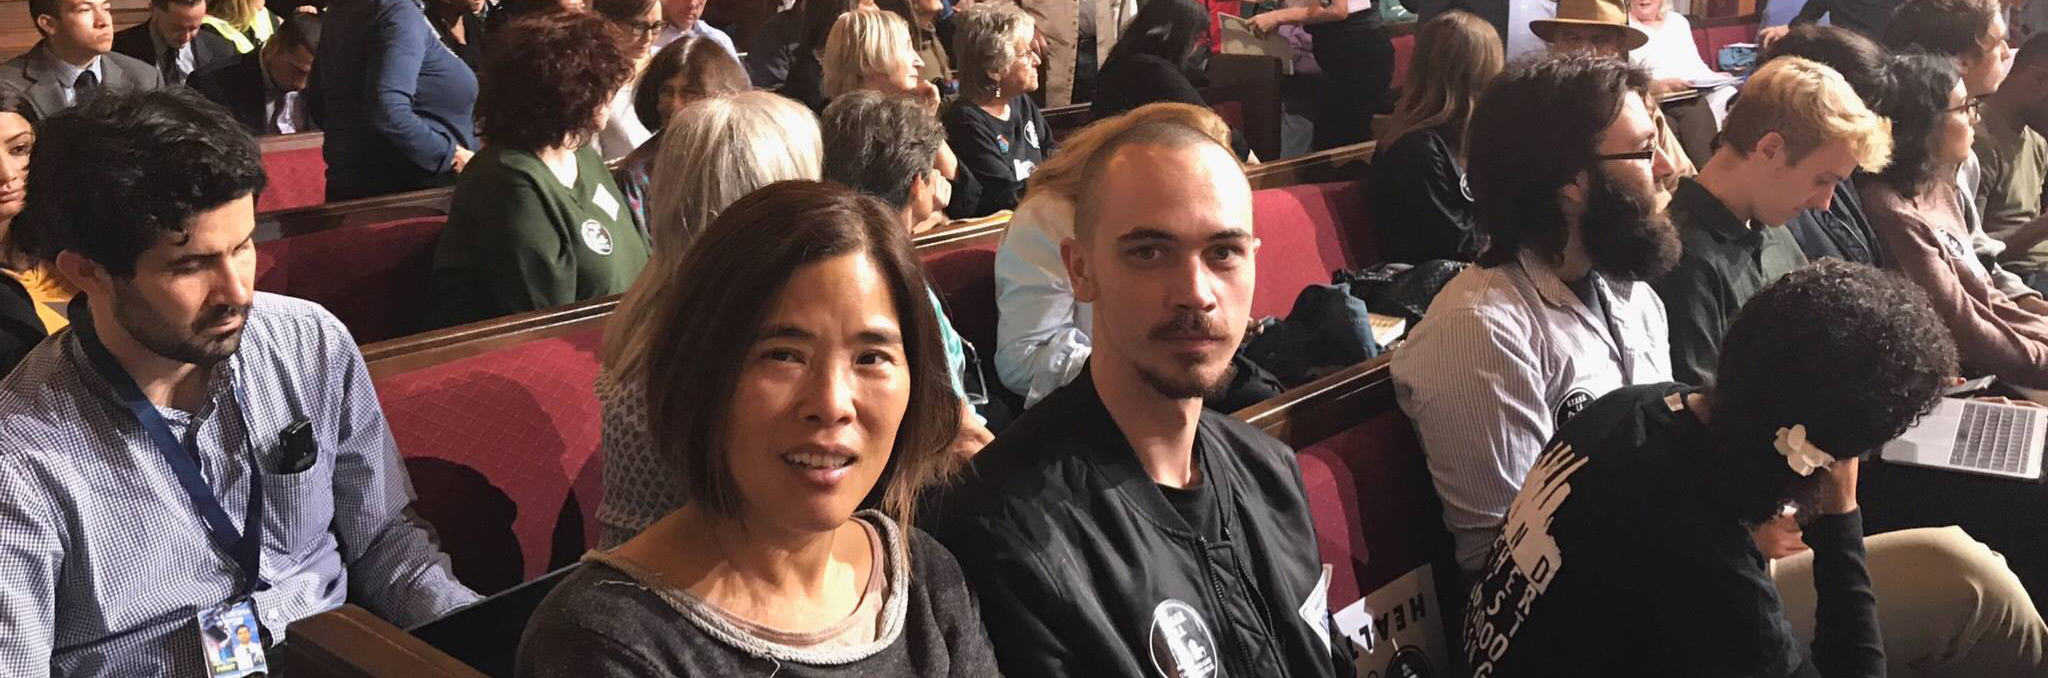 Miles and Li at a hearing for  S.T.A.N.D. L.A.  - to push for a city-wide decision to end neighborhood fossil fuel extraction.